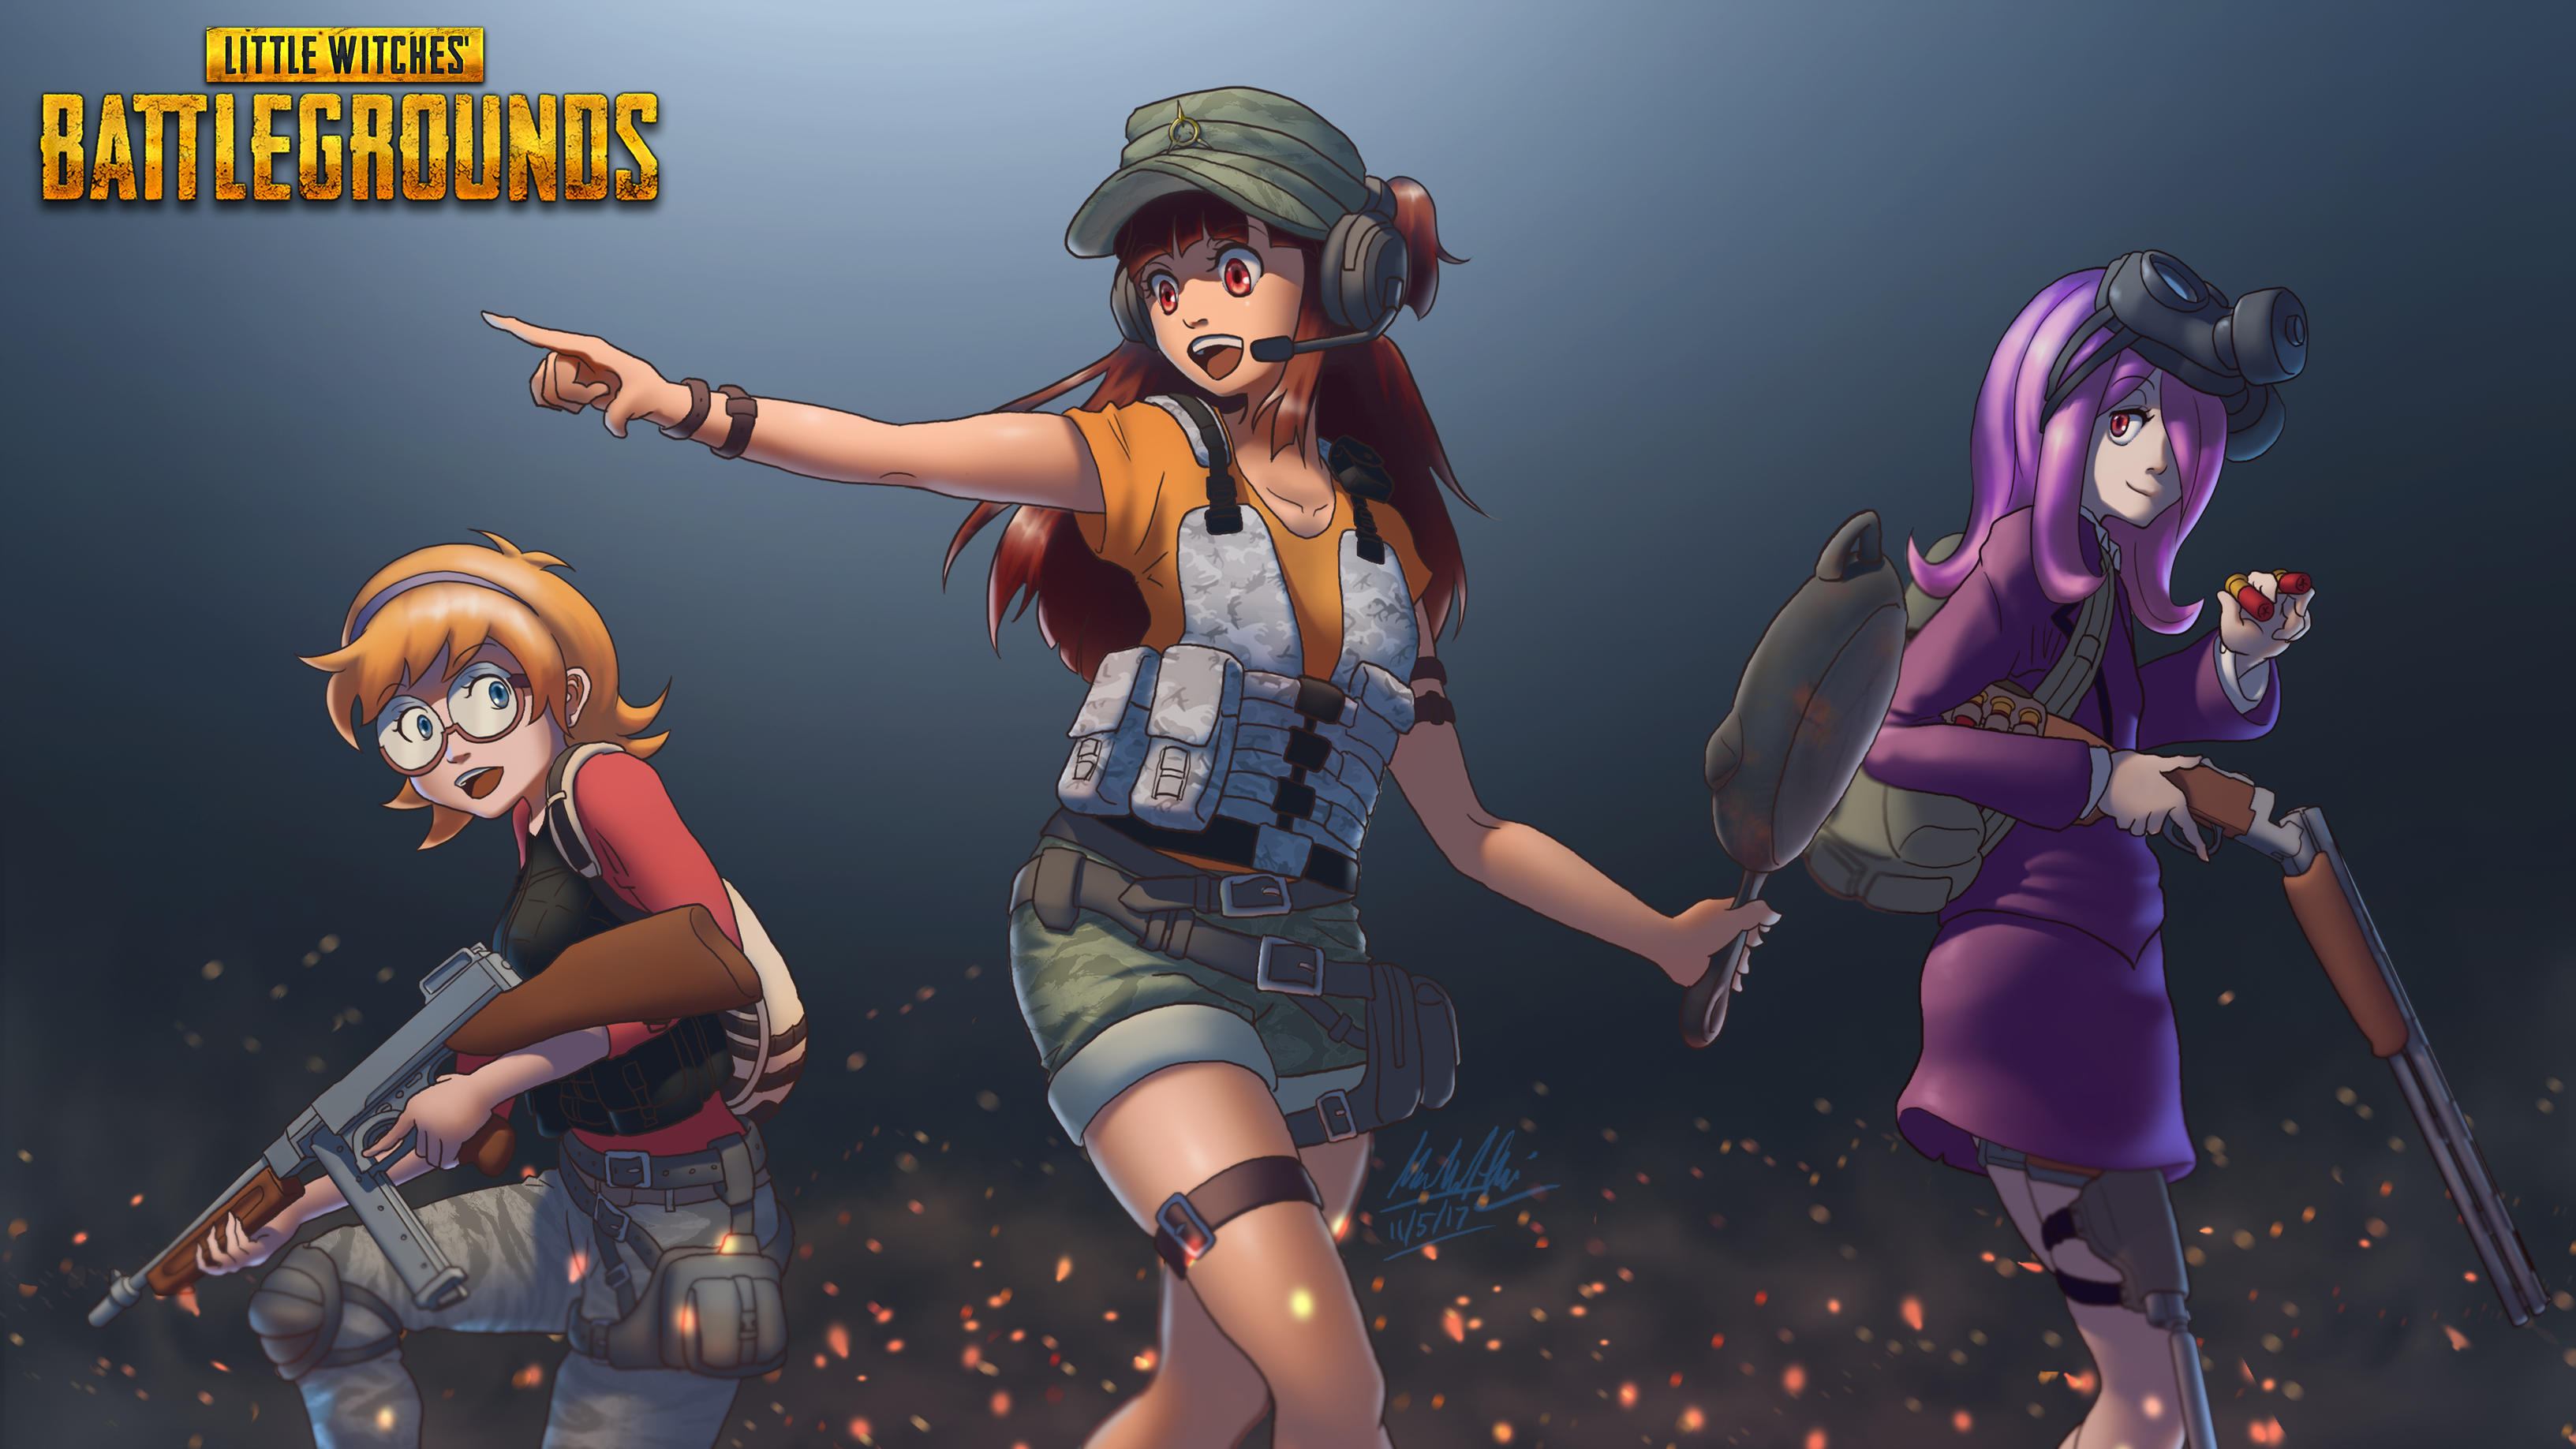 Pubg Artwork Wallpapers: Pubg Anime Crossover Art, HD Games, 4k Wallpapers, Images